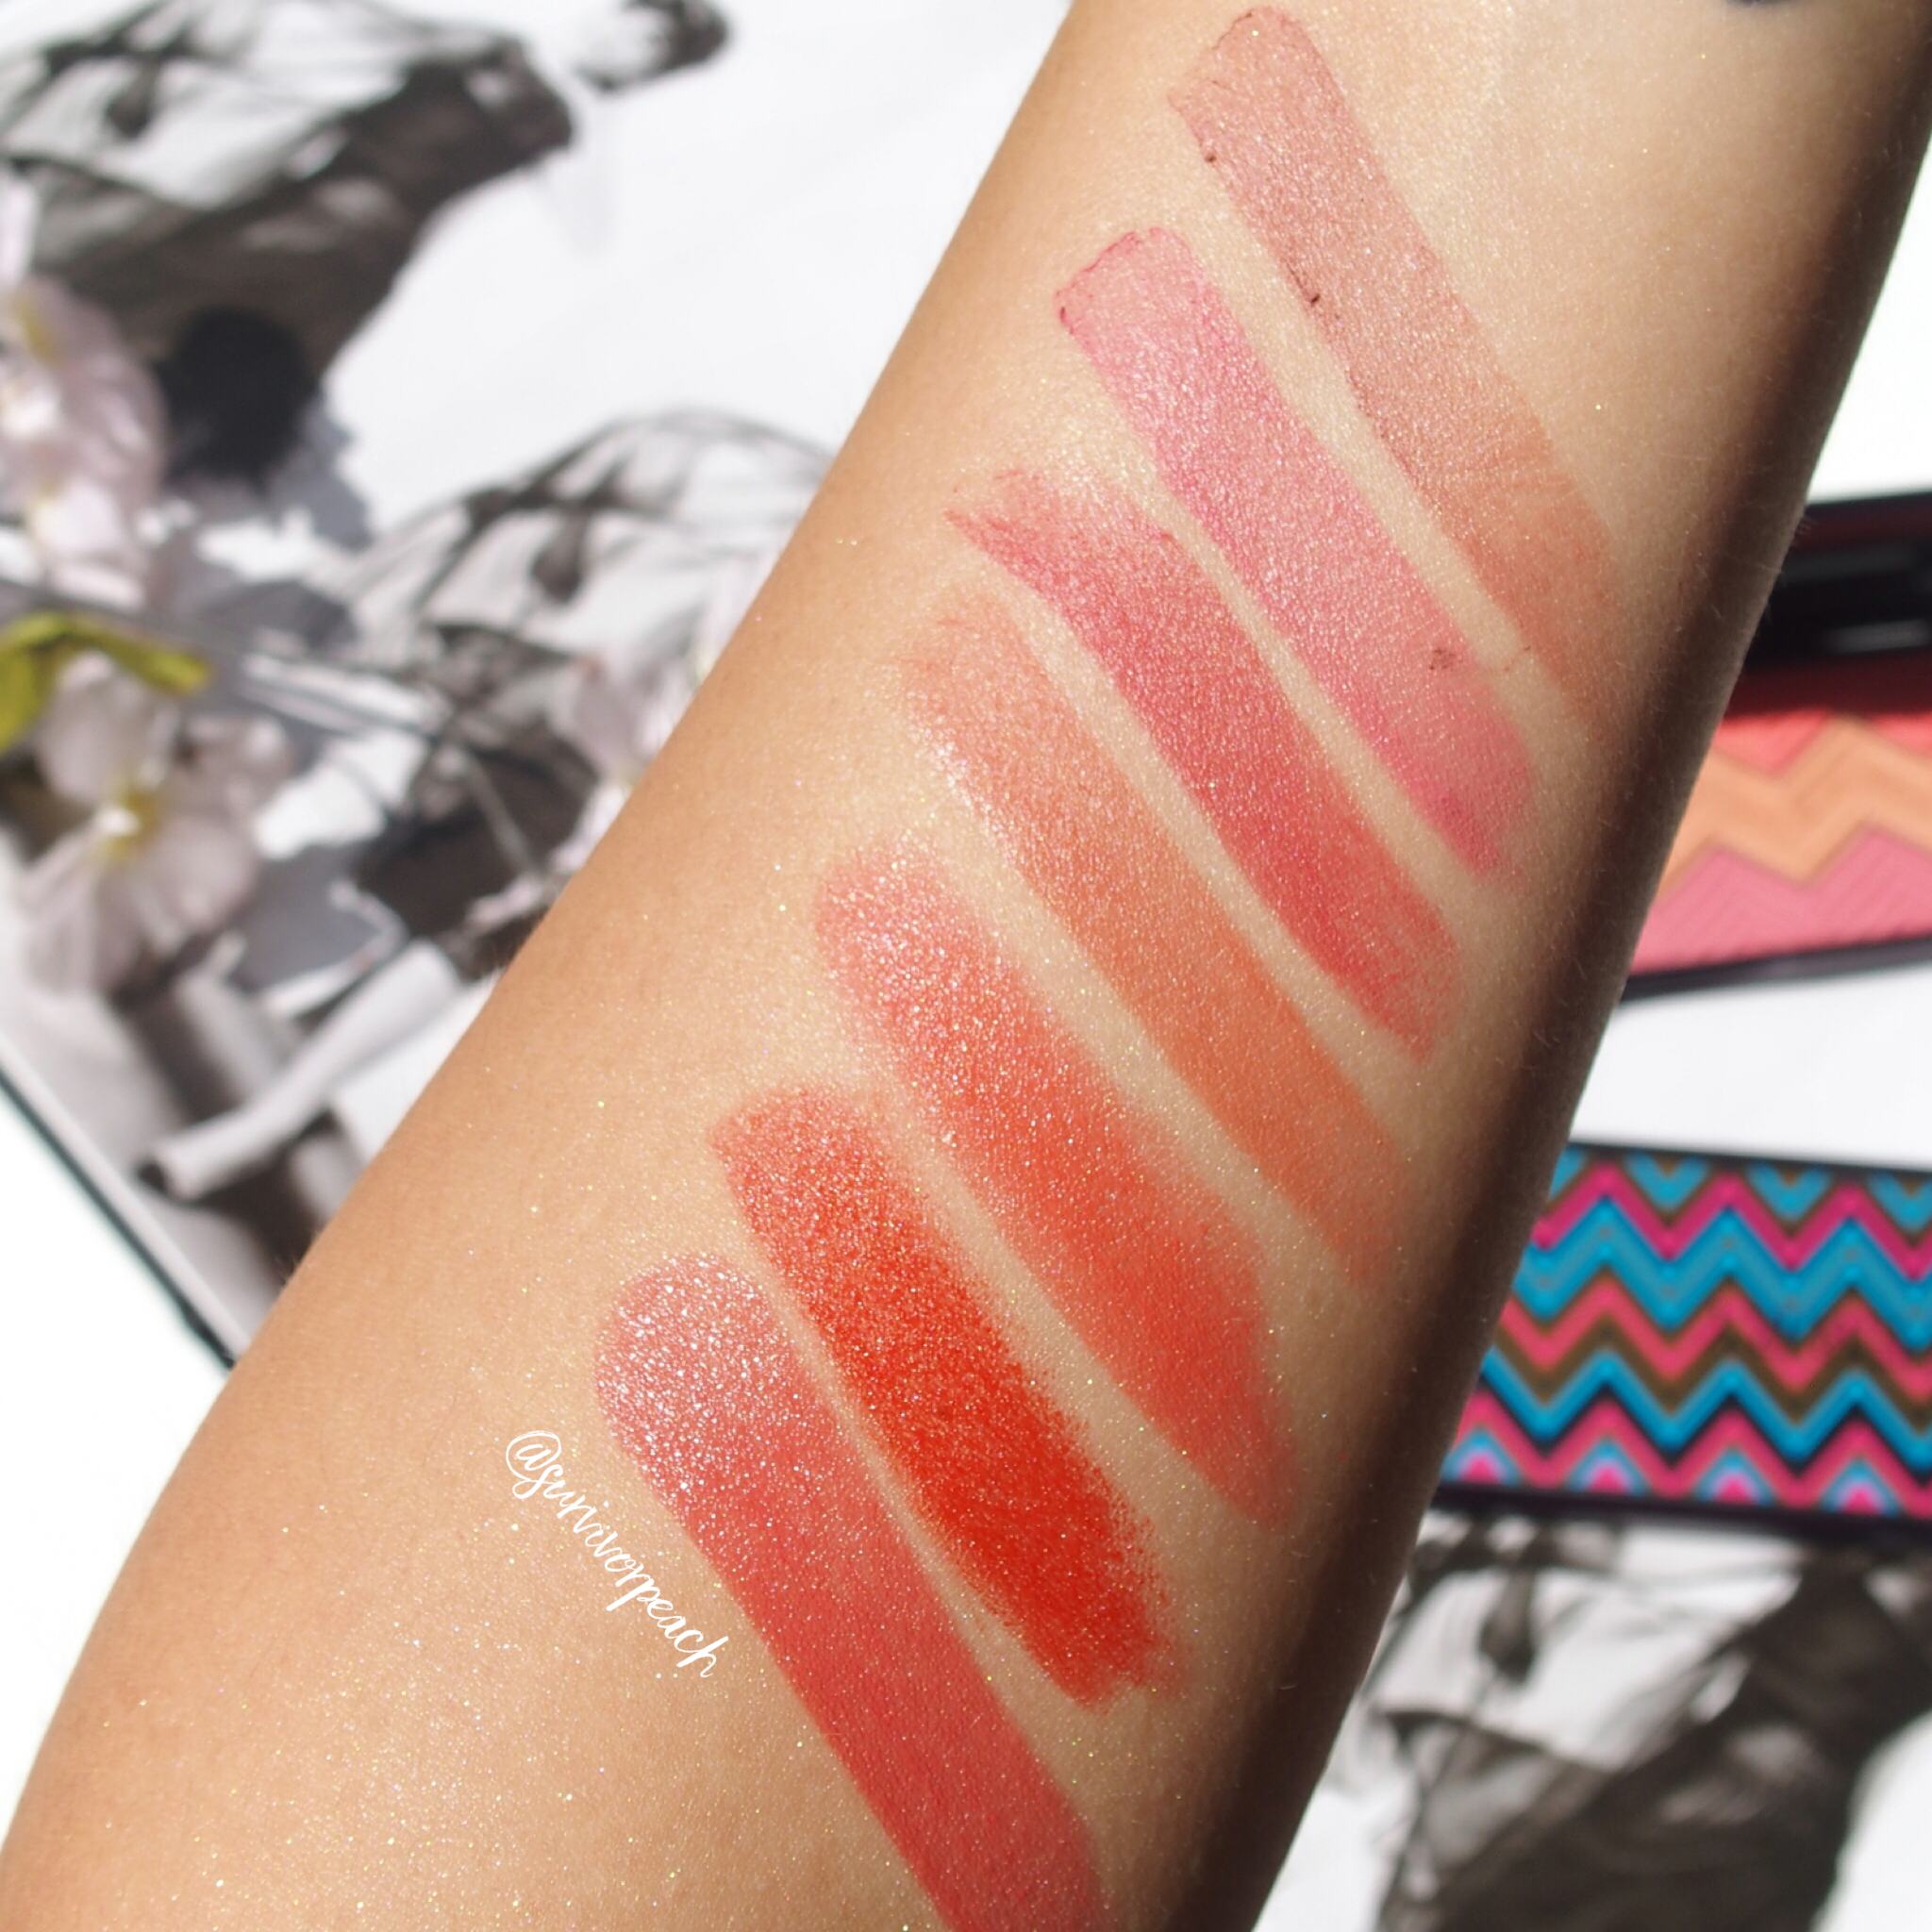 By Terry lipstick swatches:  Rouge Expert Click sticks in #3 Bare Me #6 Rosy Flush, #11 Baby Brick, and #12 Naked Nectar.  Rouge Terribly in shades 200 Frenetic Vermillion and 400 21 Vero-Dodat.  Rouge Hyaluronic Sheer Rouge lipstick in shade Baby Bloom.